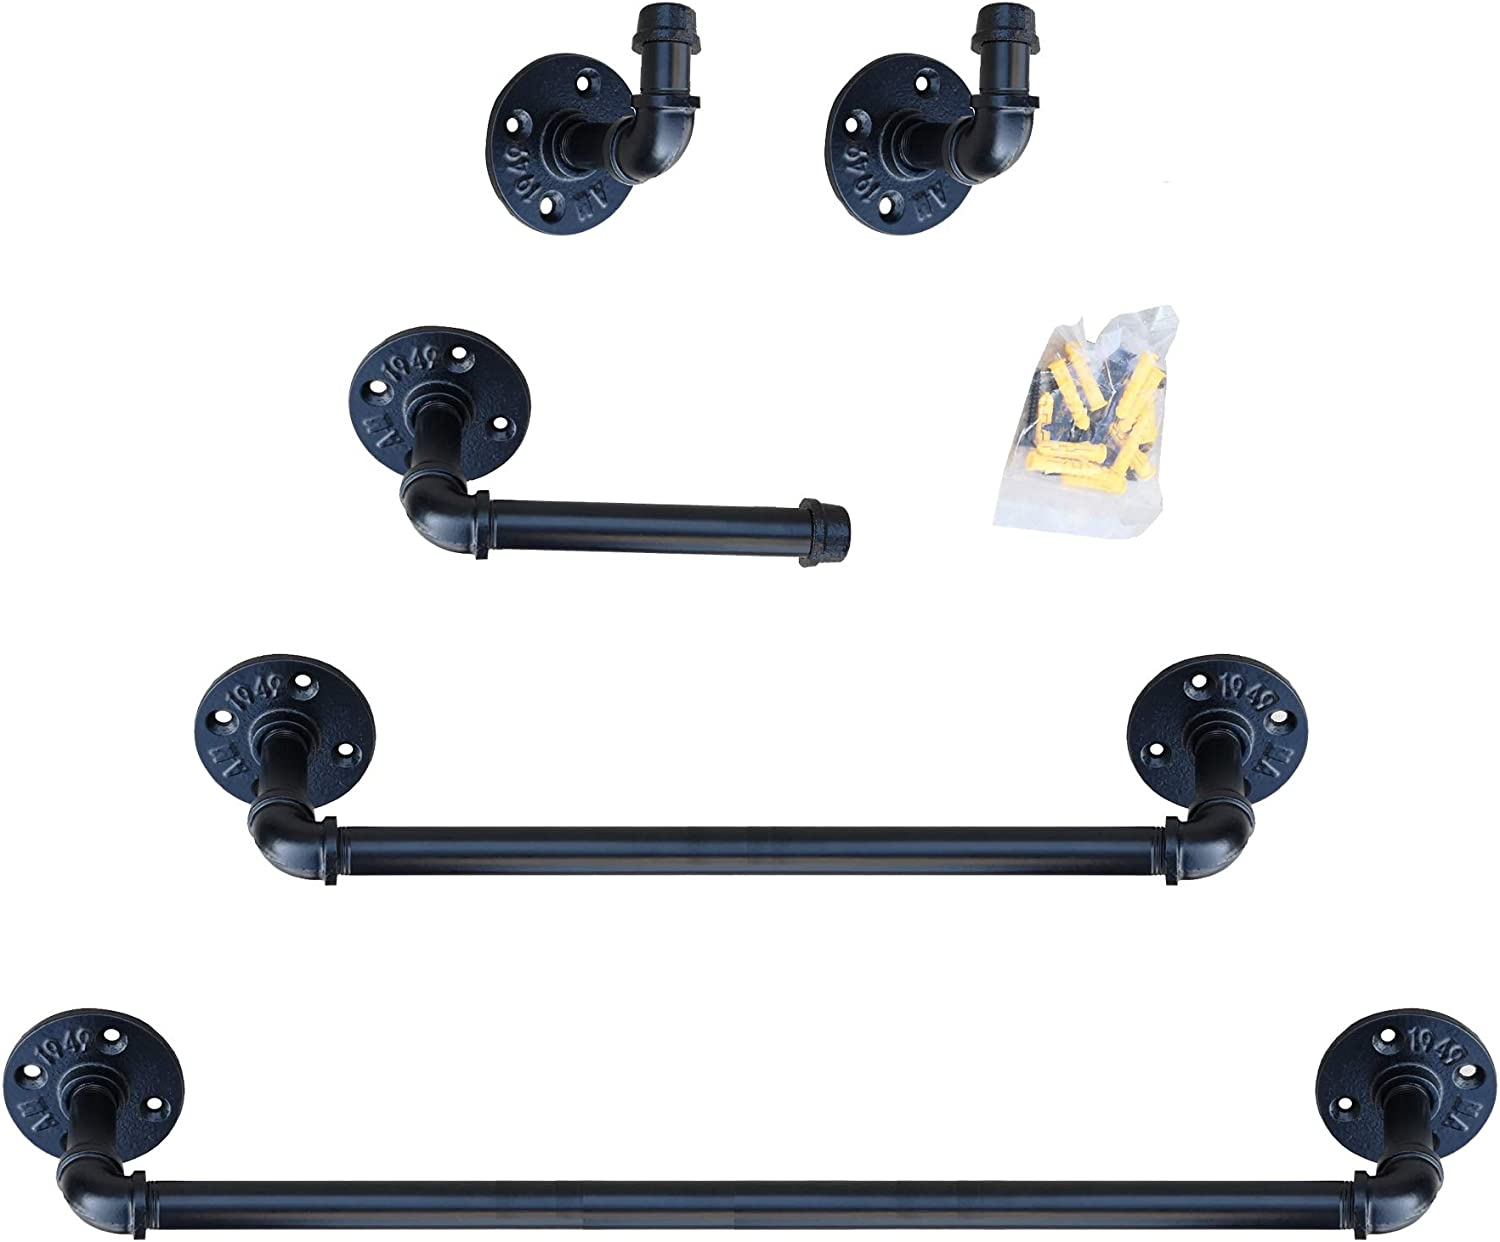 Industrial Pipe Bathroom Hardware Fixture Set   Bathroom Accessories Set - 5-Piece Kit Includes Robe Hook, 24 & 18 Inch Bath Pipe Towel Rack Bar and Toilet Paper Holder,Coated Finish